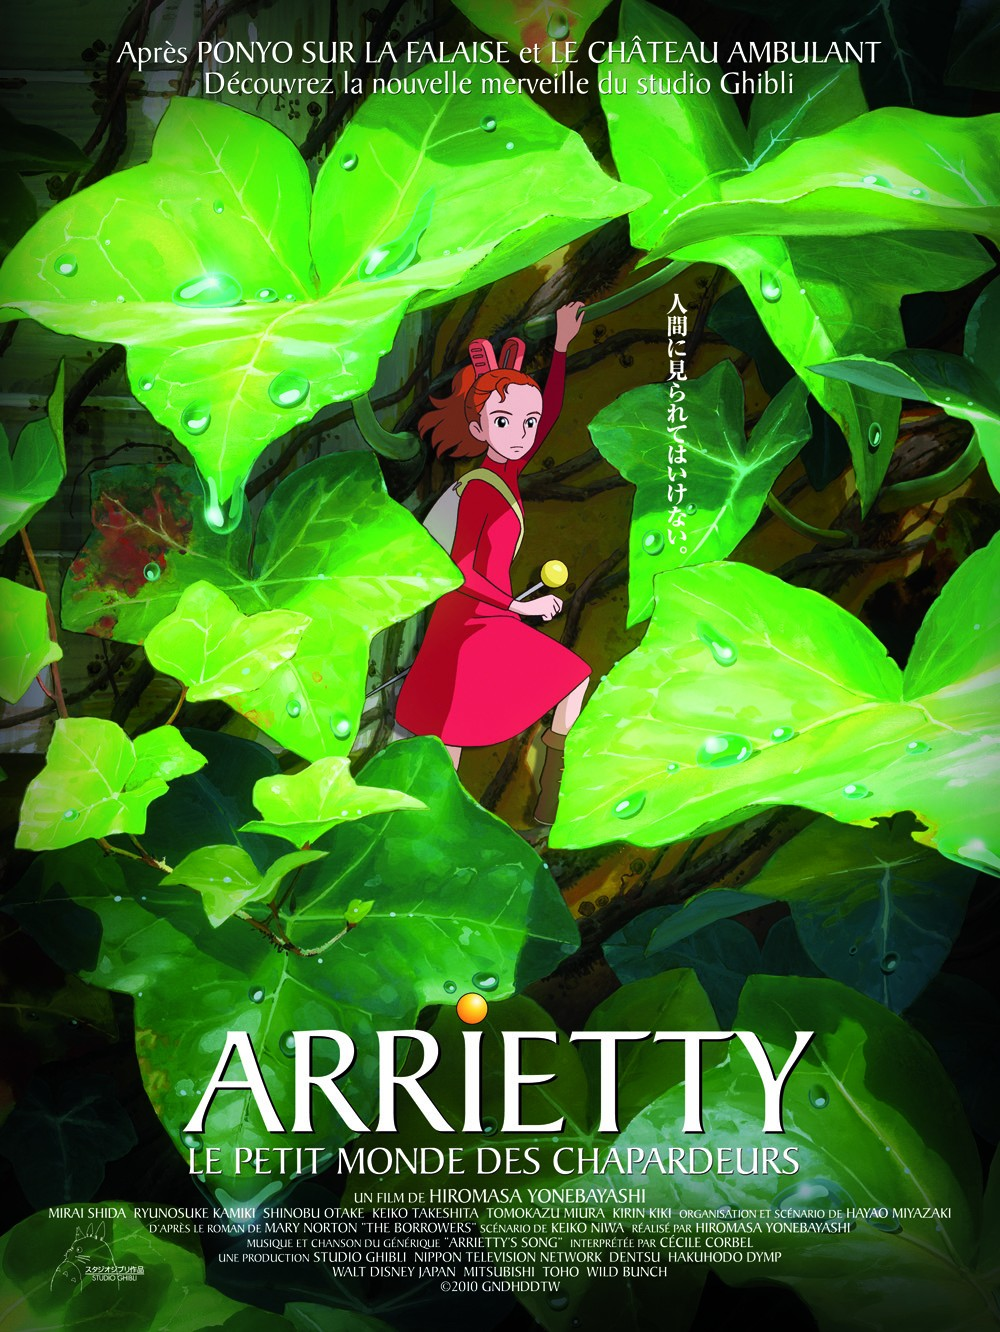 Arrietty le petit monde des chapardeurs 2017 avi english subtitles